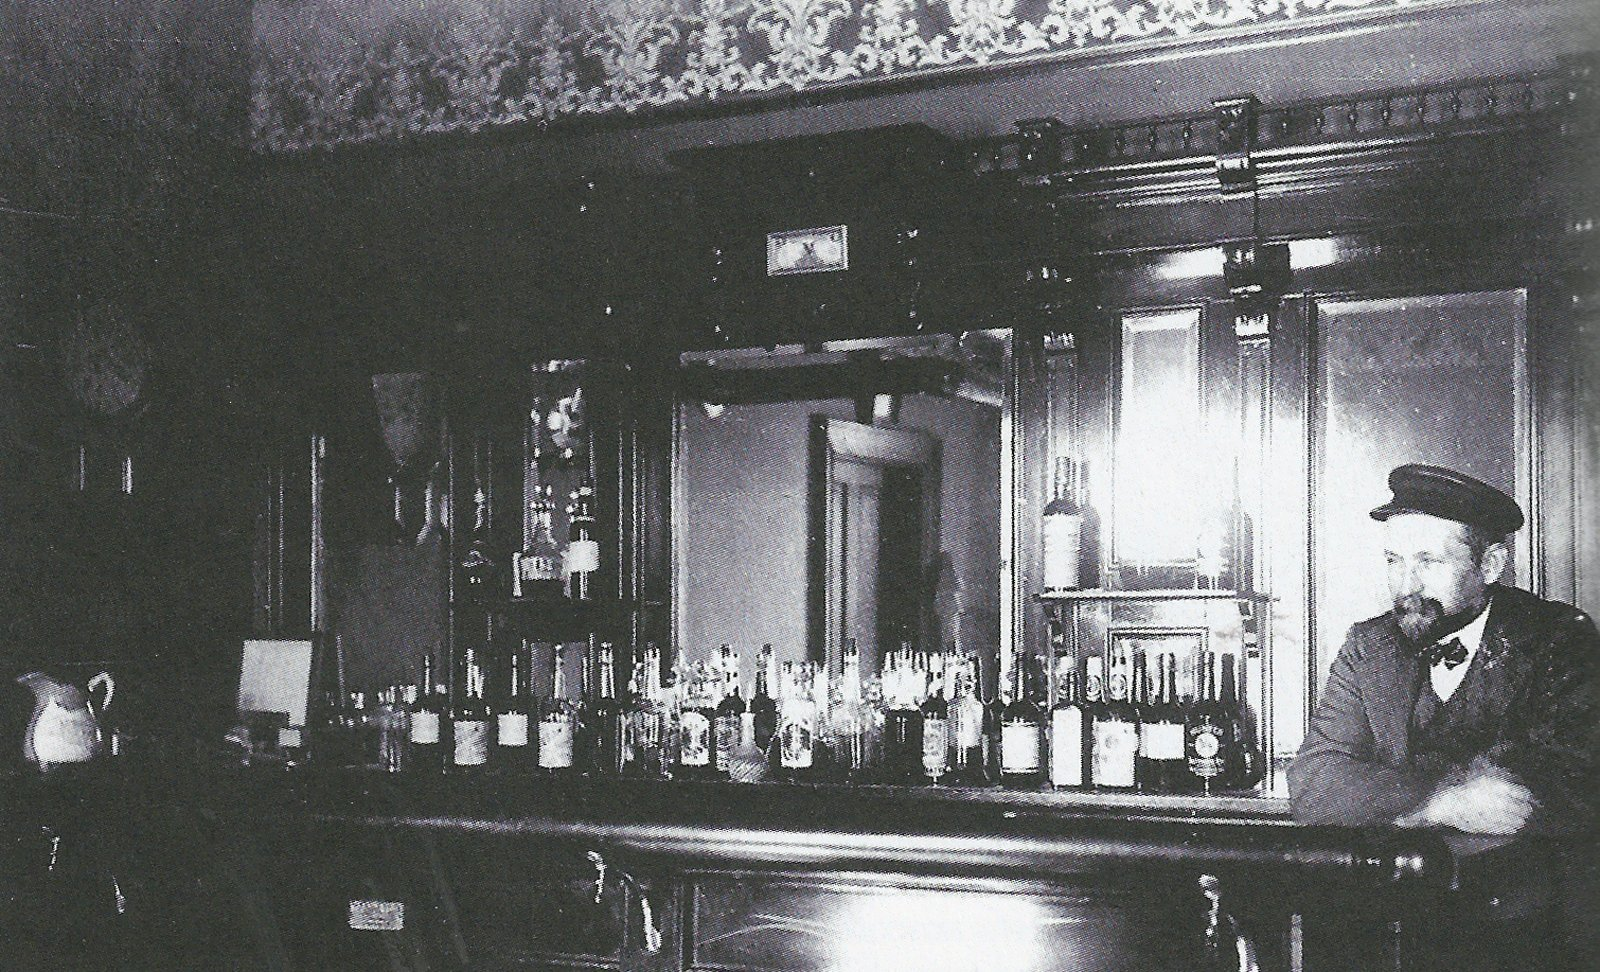 This is one of the few pictures that provided a glimpse of what Chauncey's Pub used to be.